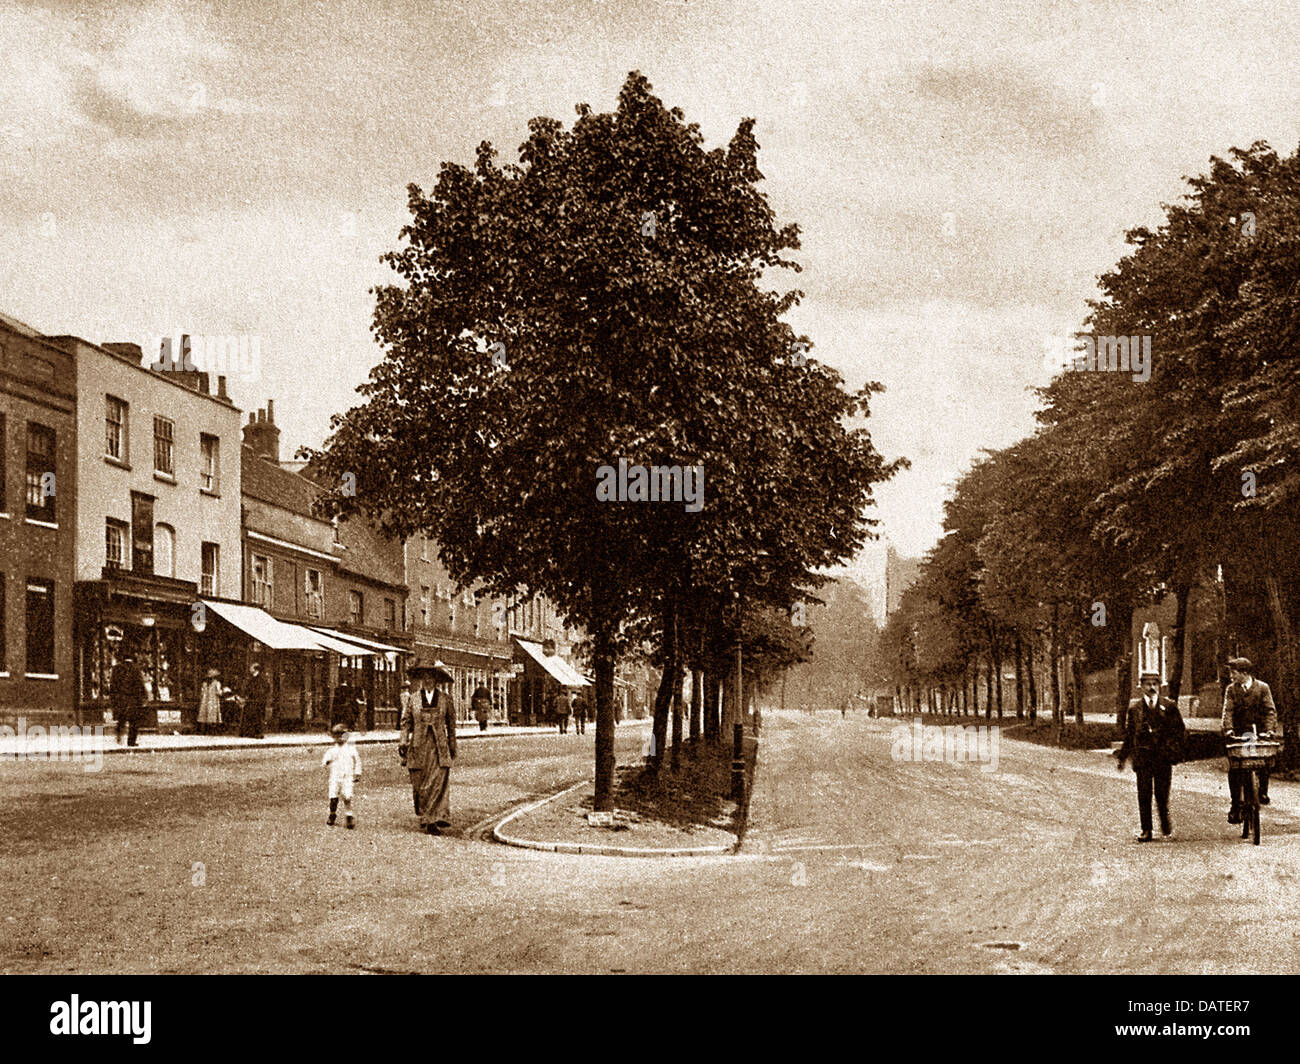 St. Albans St. Peter's Street early 1900s - Stock Image